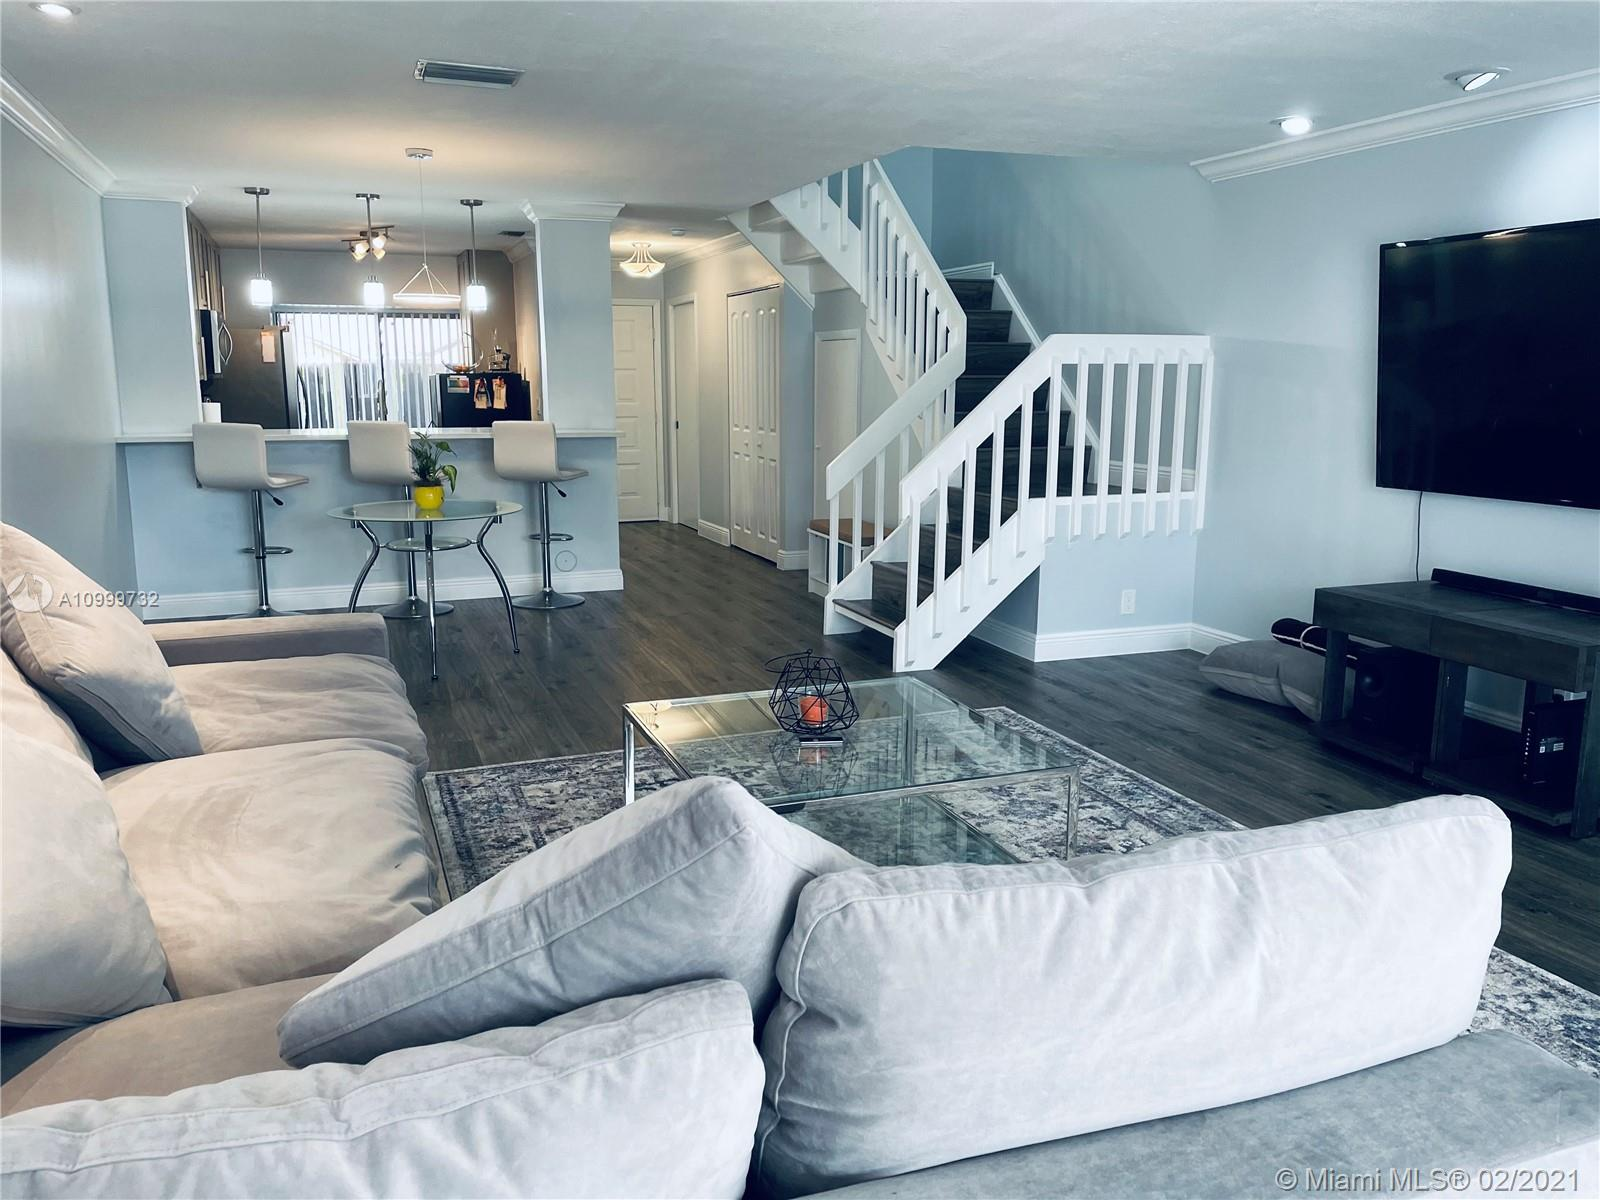 """Modern townhome, with a lake view. Appliances are less than two years old. All bedrooms and two full en suite bathrooms are located on the second floor, half bathroom is located on the first floor. Master bedroom has a walk-in closet and a shower. Second bedroom's en suite has a bathtub. Property is """"AS-IS"""" HOA has reserves."""